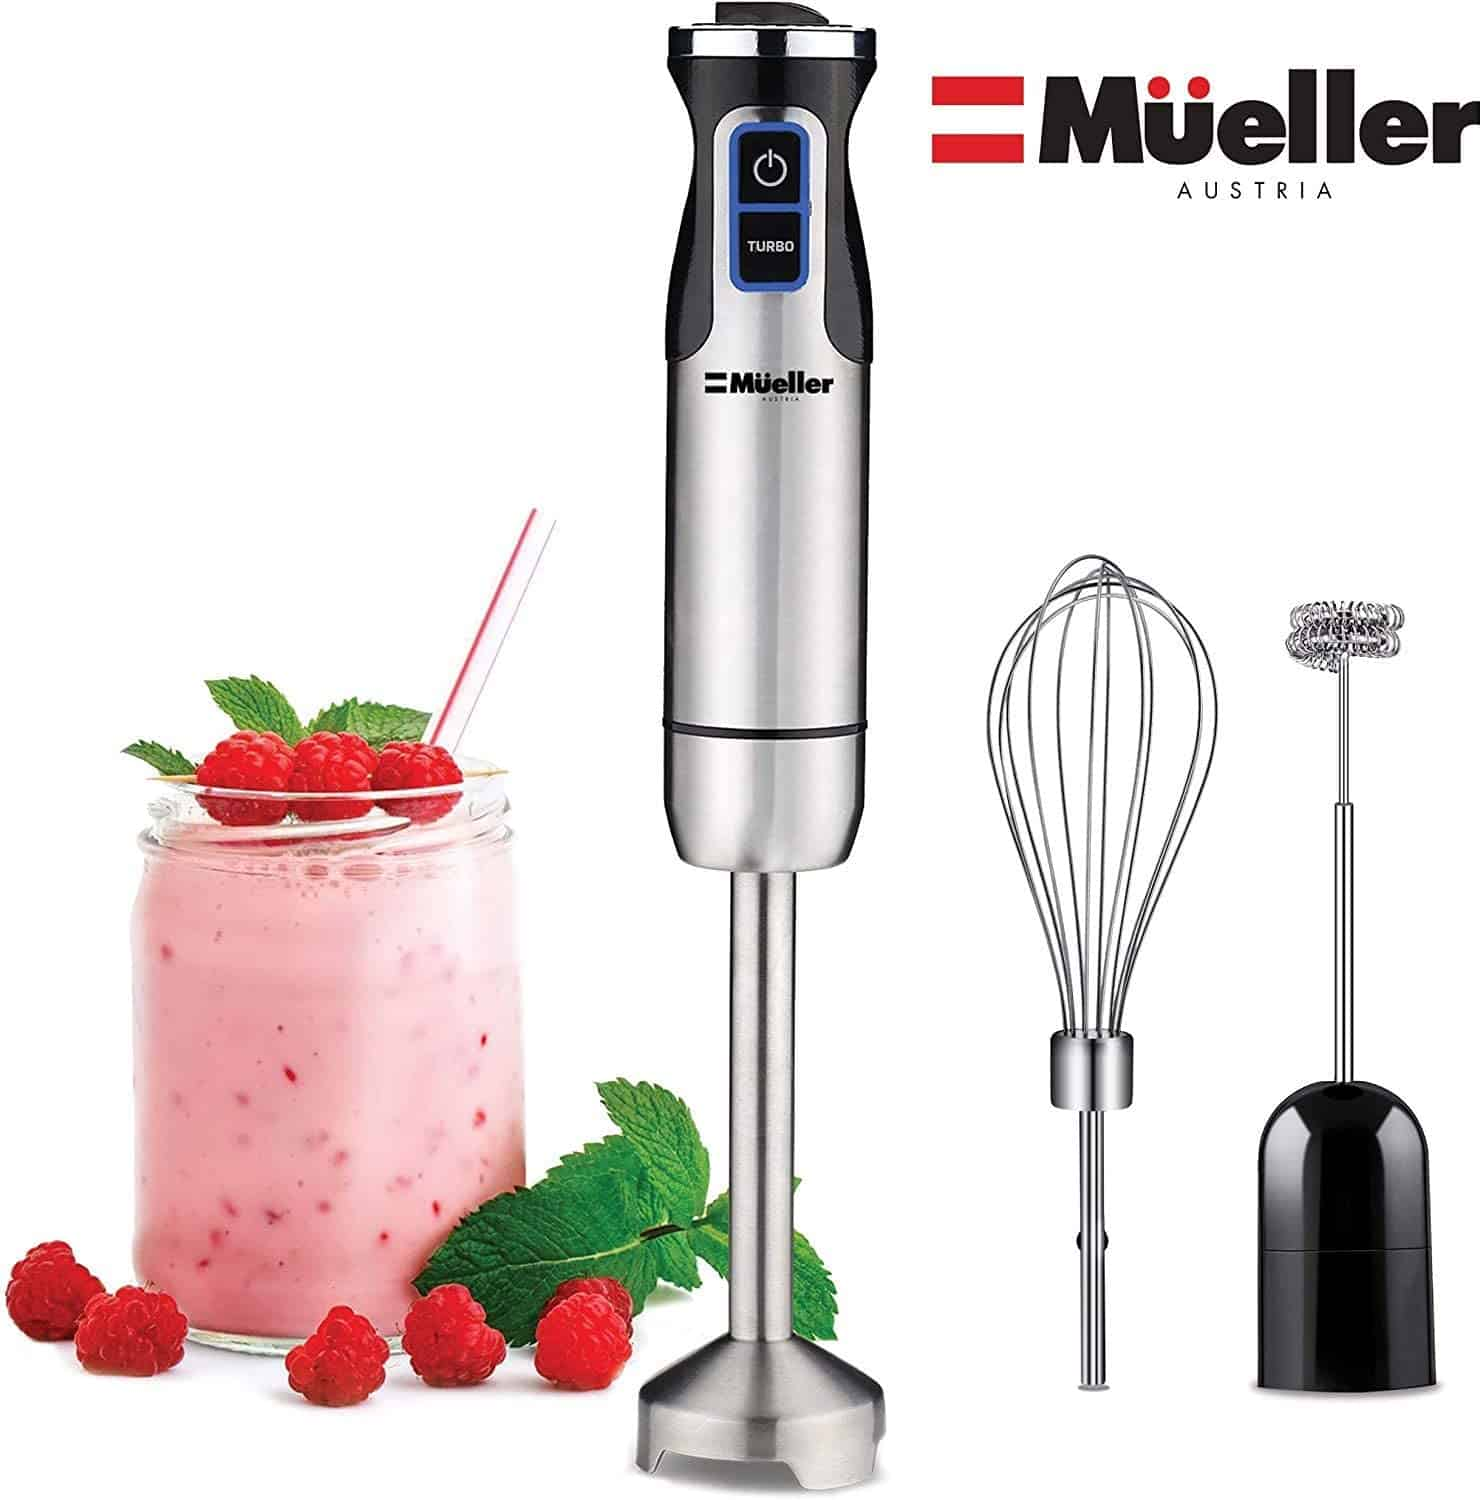 Ultra-Stick 500 Watt 9-Speed Immersion Multi-Purpose Hand Blender Heavy Duty Copper Motor Brushed Stainless Steel Finish With Whisk, Milk Frother Attachments, Silver